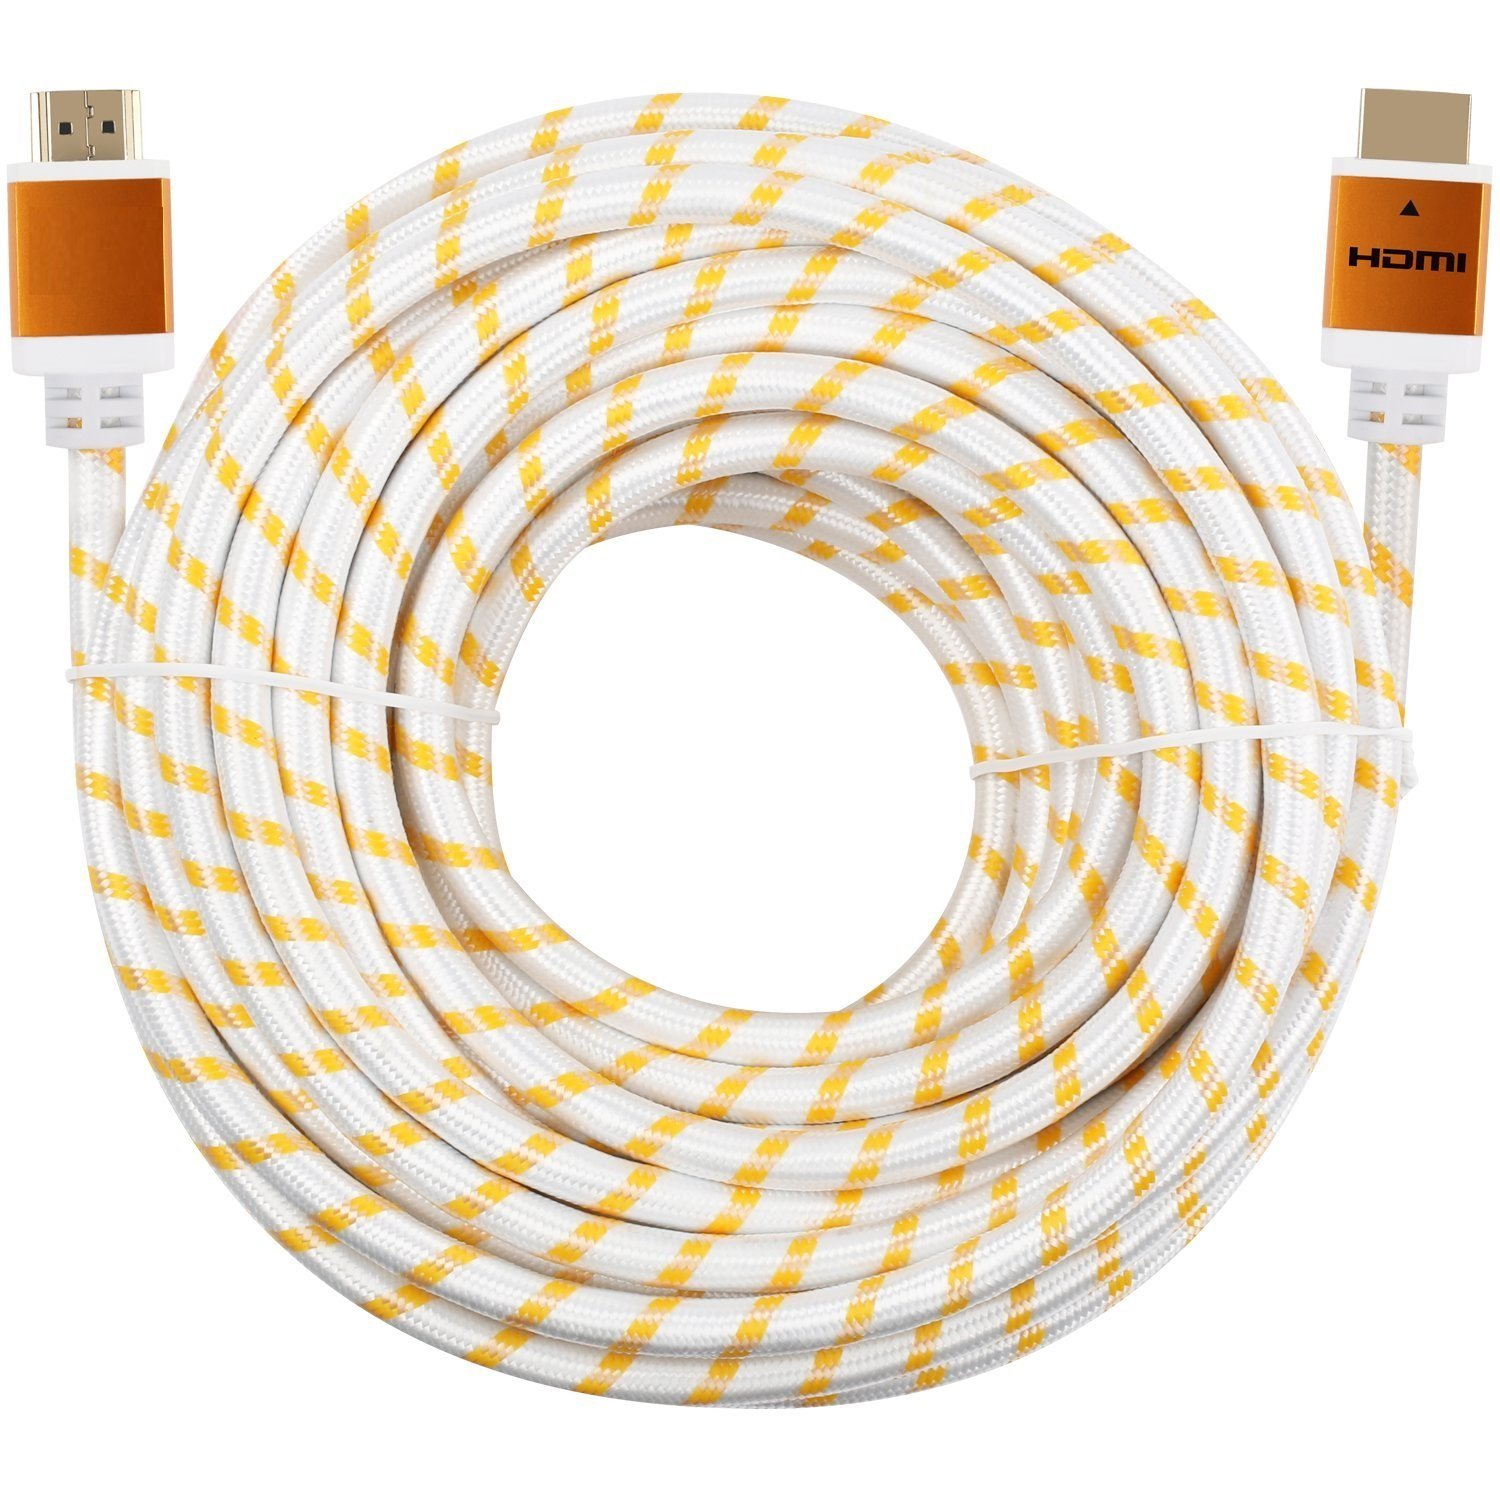 CableVantage Premium HDMI Cable 100FT 100feet V1.4 for 1080P 3D TV DVD PS4 PS3 Xbox One 360 HDTV Monitor Braided Nylon HDMI Cord, Gold Tip White by CableVantage